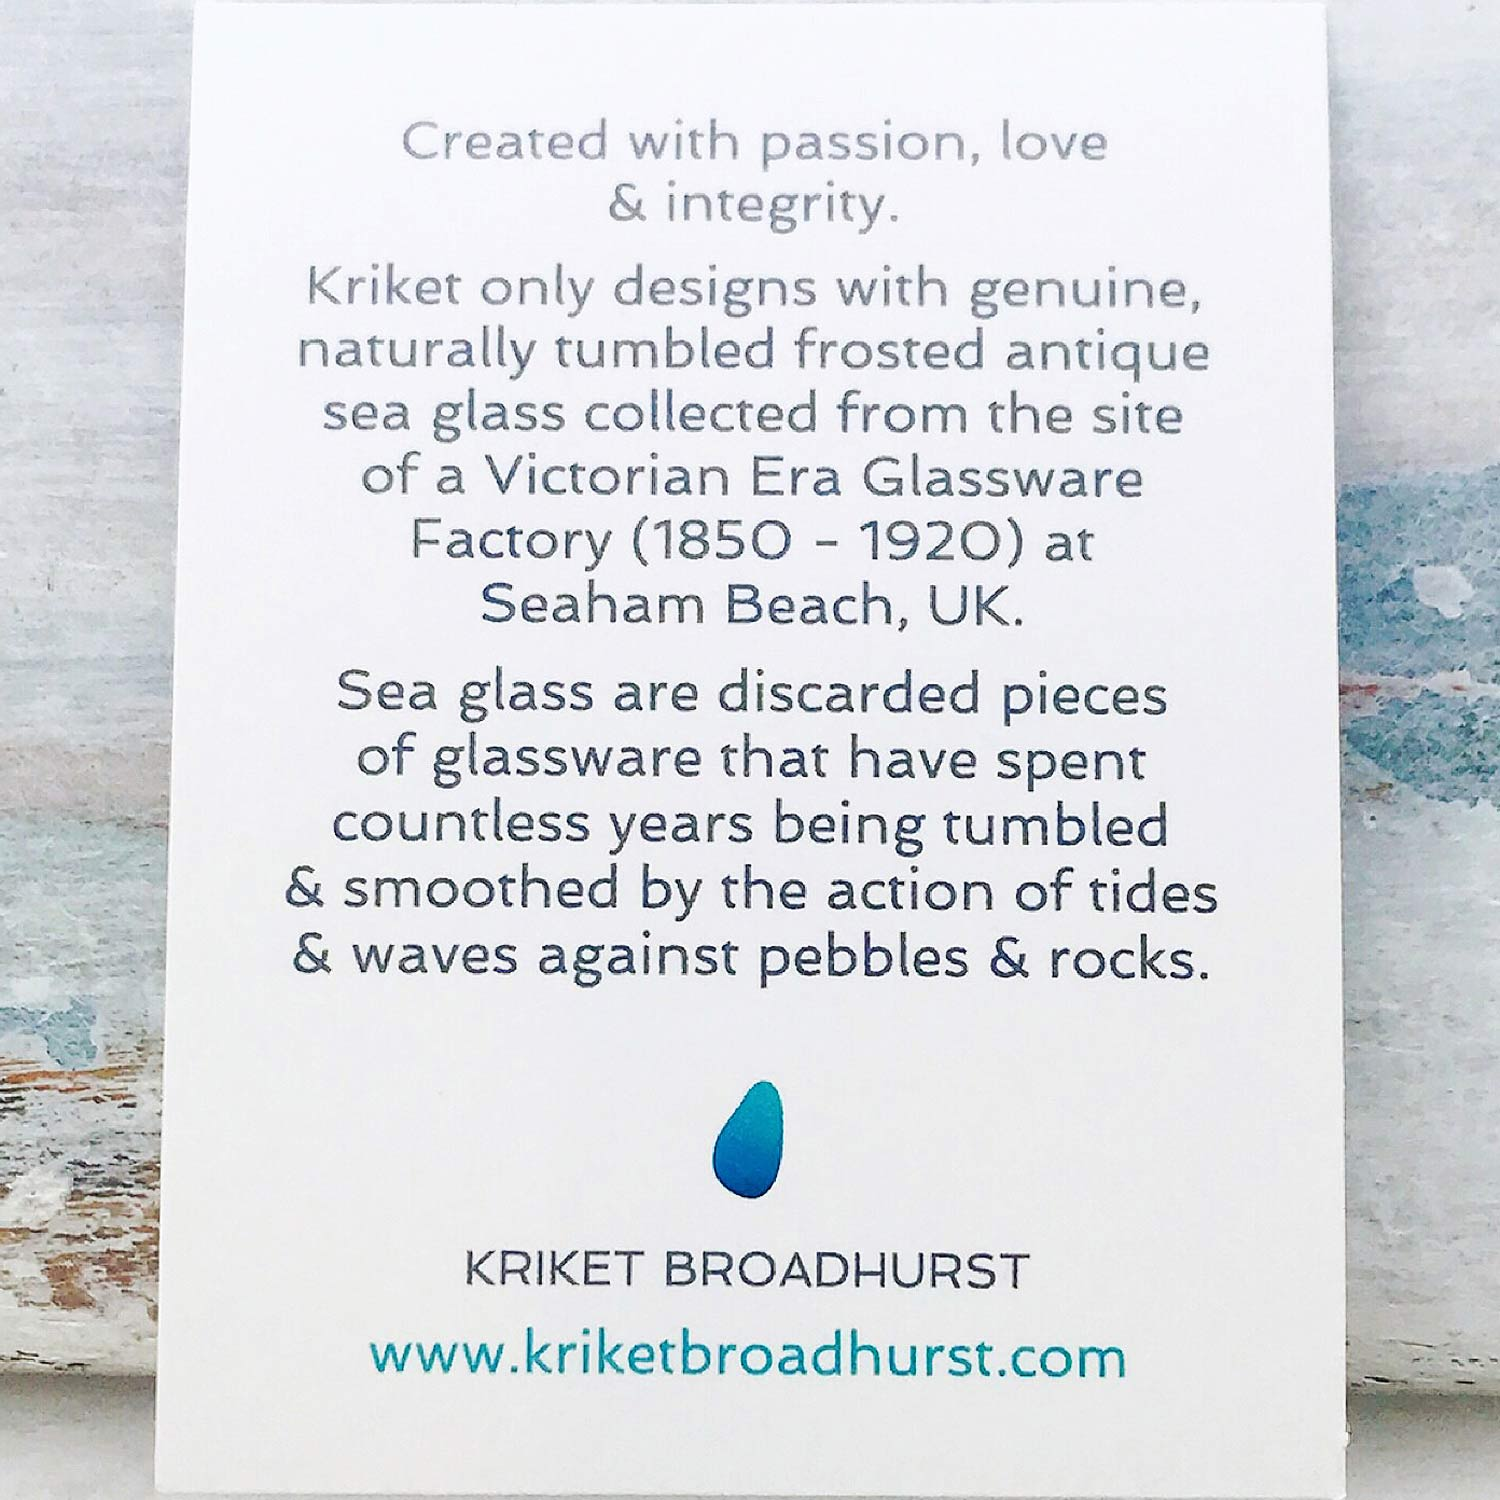 kriket broadhurst jewellery information card